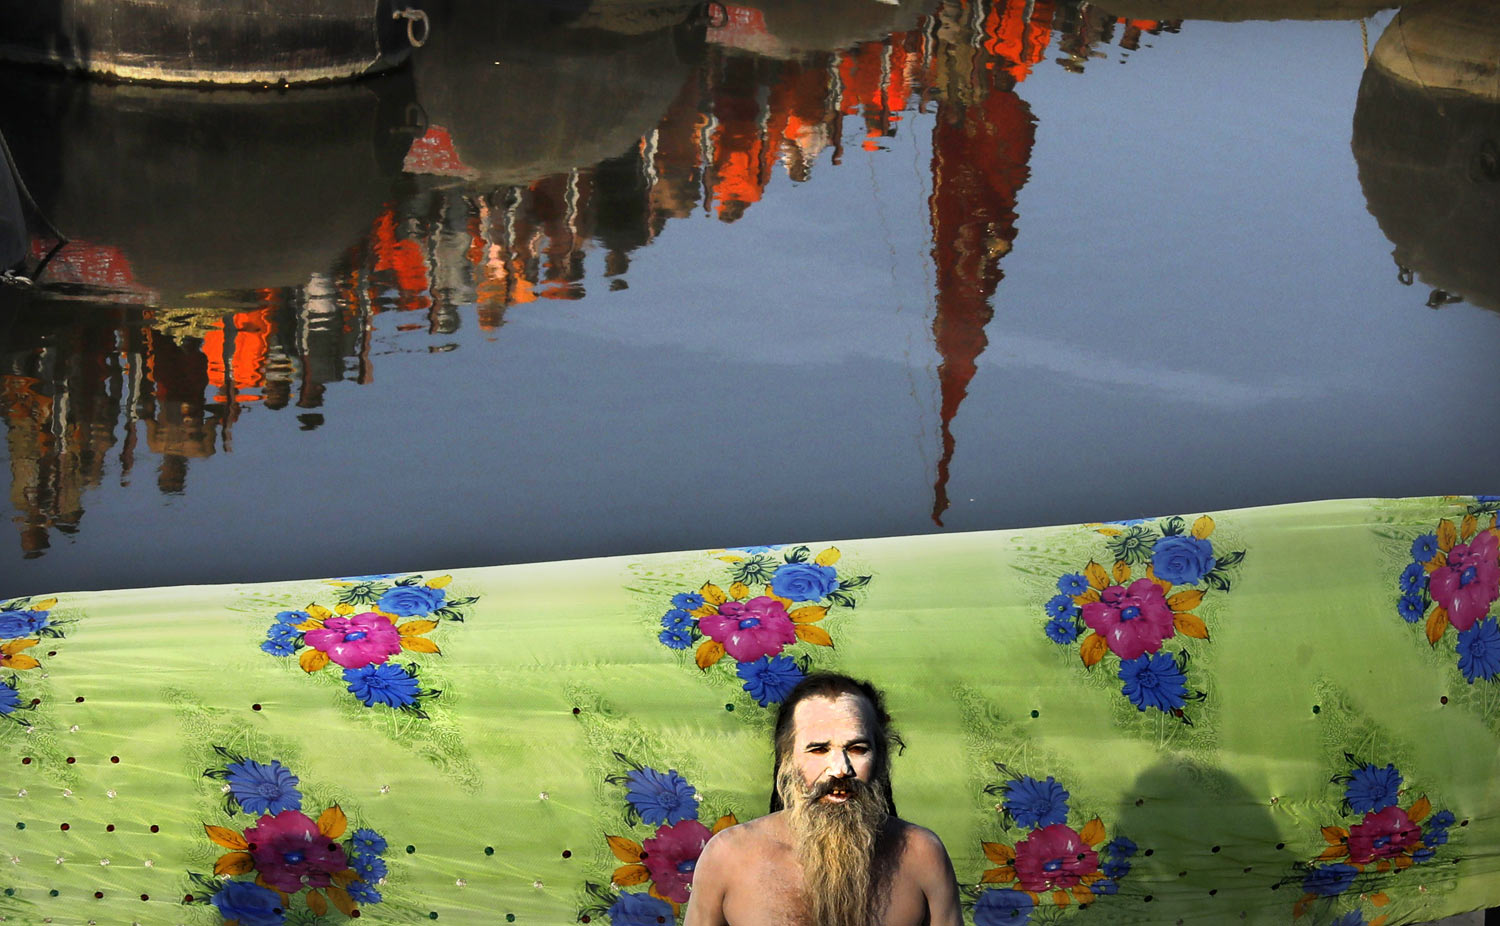 A naked Hindu holy man prays as others cross a pontoon bridge to take ritualistic dip on the auspicious day of Basant Panchami at Sangam, the confluence of sacred rivers the Yamuna, the Ganges and the mythical Saraswati, during the Kumbh Mela or the Pitcher Festival, in Prayagraj, Uttar Pradesh state, India, Sunday, Feb. 10, 2019. The Kumbh Mela is a series of ritual baths by Hindu sadhus, or holy men, and other pilgrims at Sangam that dates back to at least medieval times. Pilgrims bathe in the river believing it cleanses them of their sins and ends their process of reincarnation. (AP Photo/Rajesh Kumar Singh)